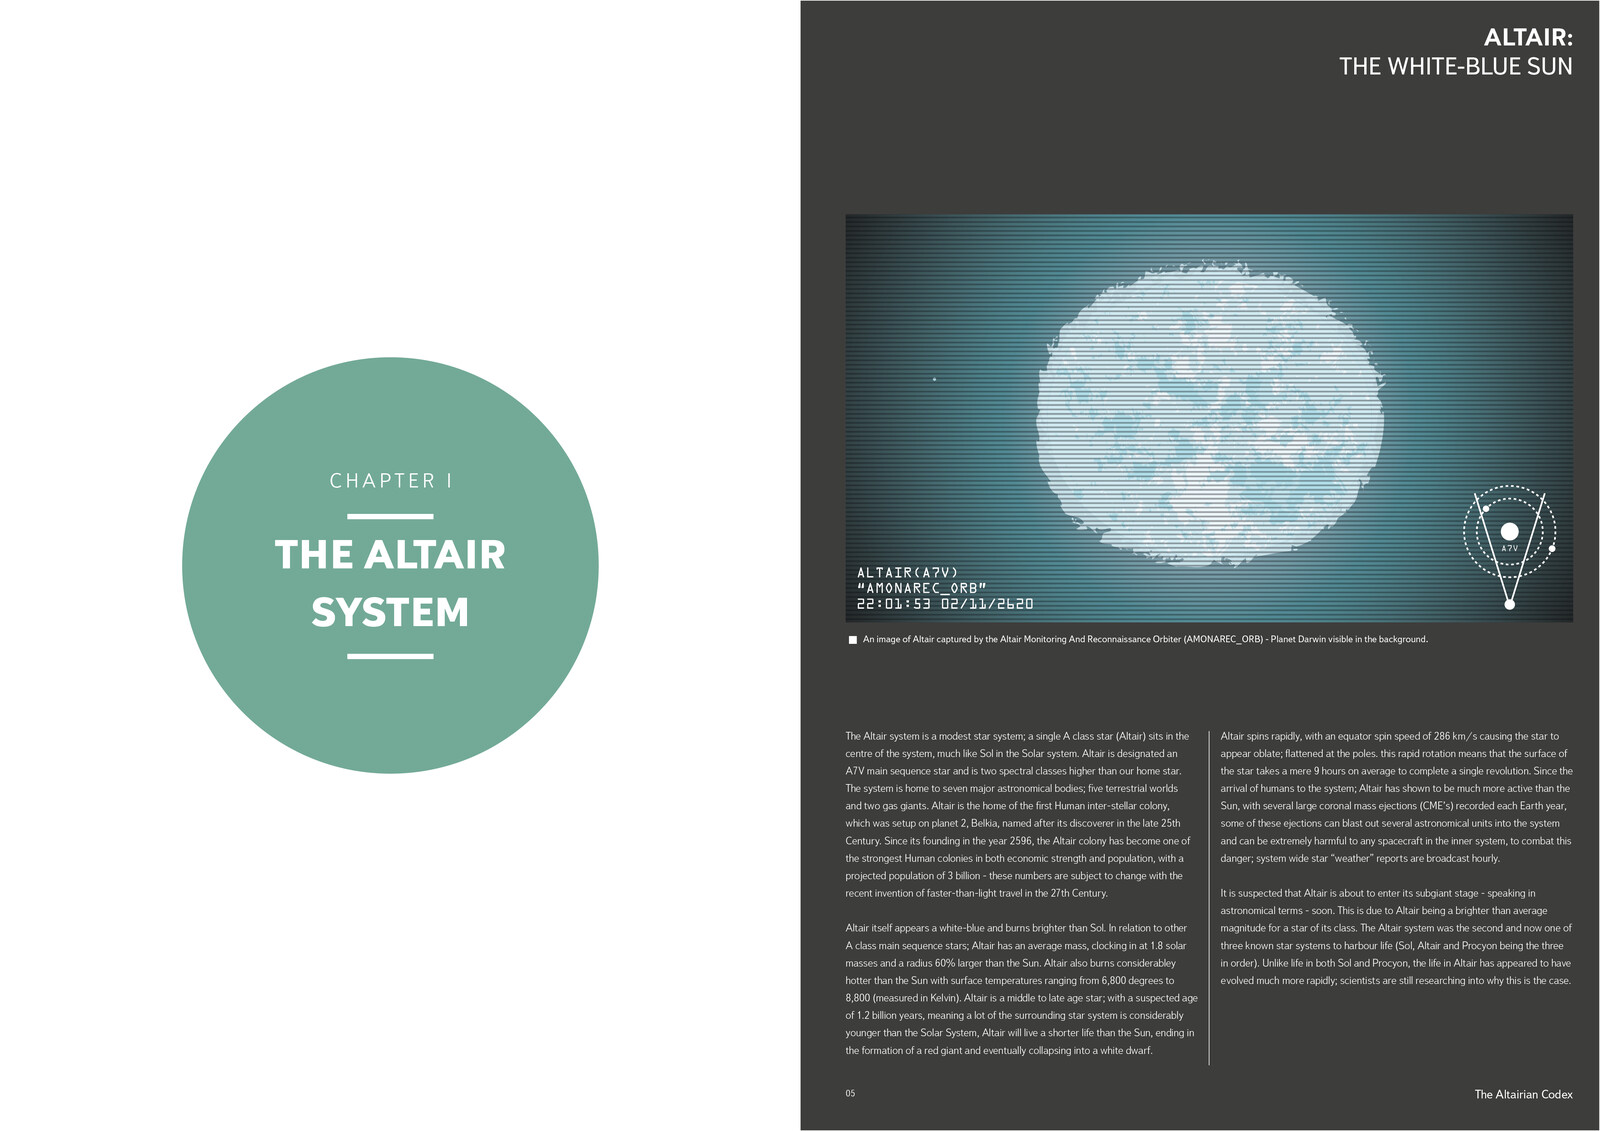 Chapter 1 and Altair pages